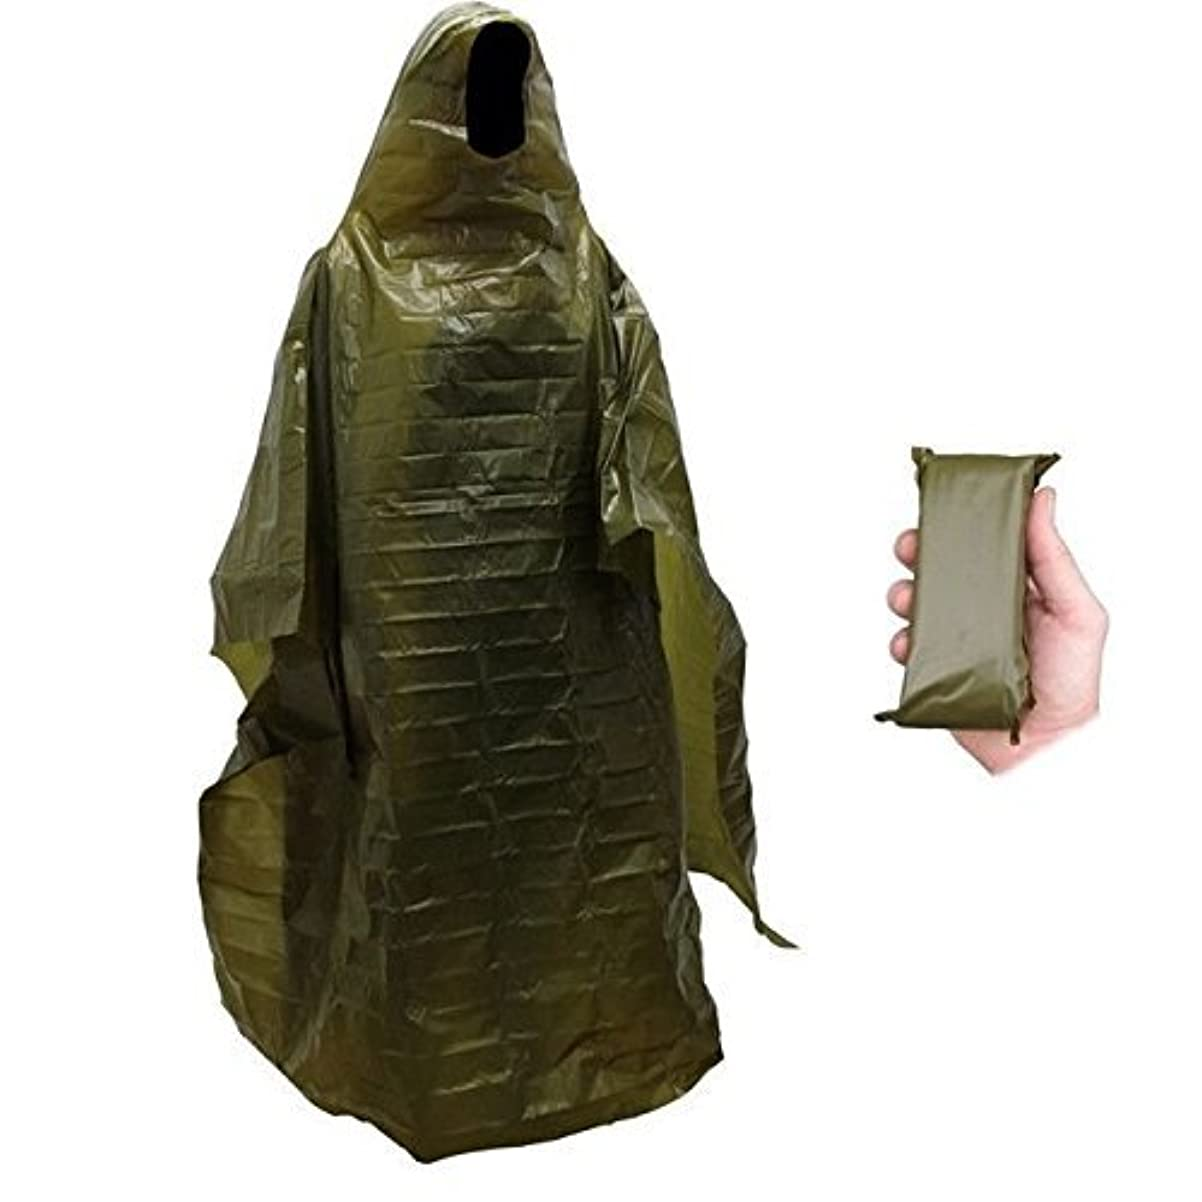 地球ヘルシー共産主義Emergency Norwegian Military Surplus Emergency Poncho Blanket by ABC Beskyttende